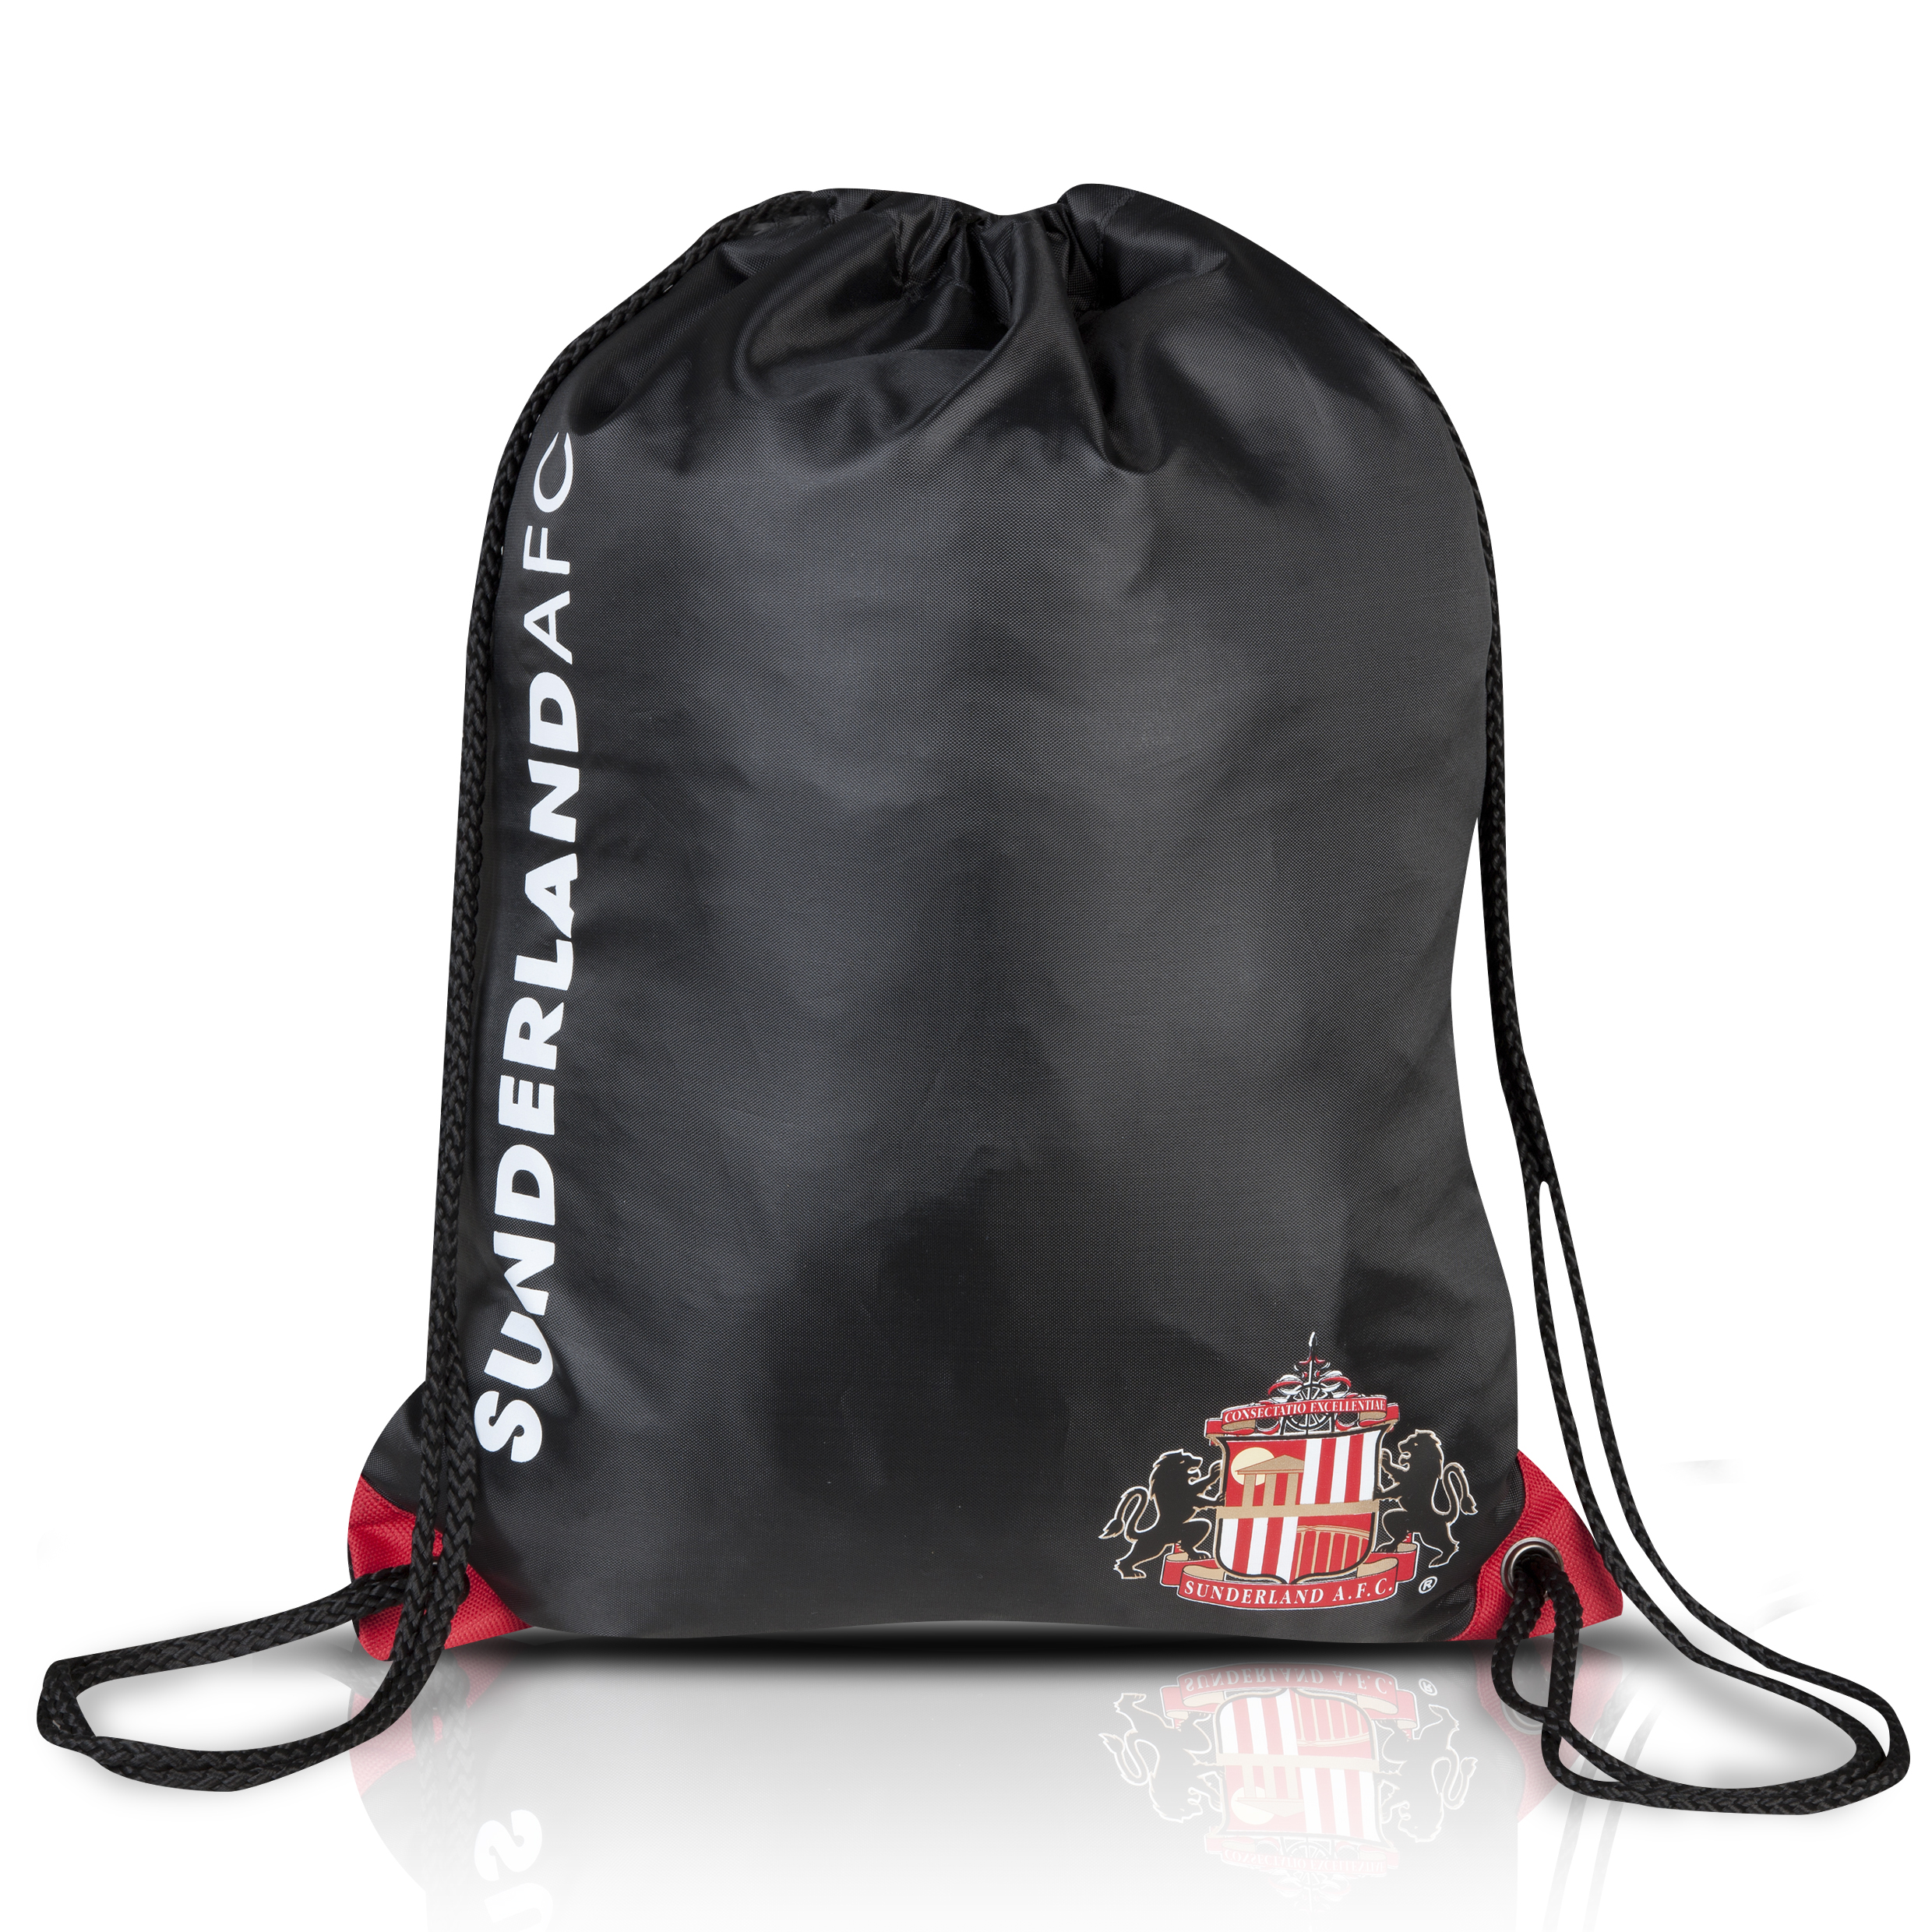 Sunderland Core Gymbag - Black/Red